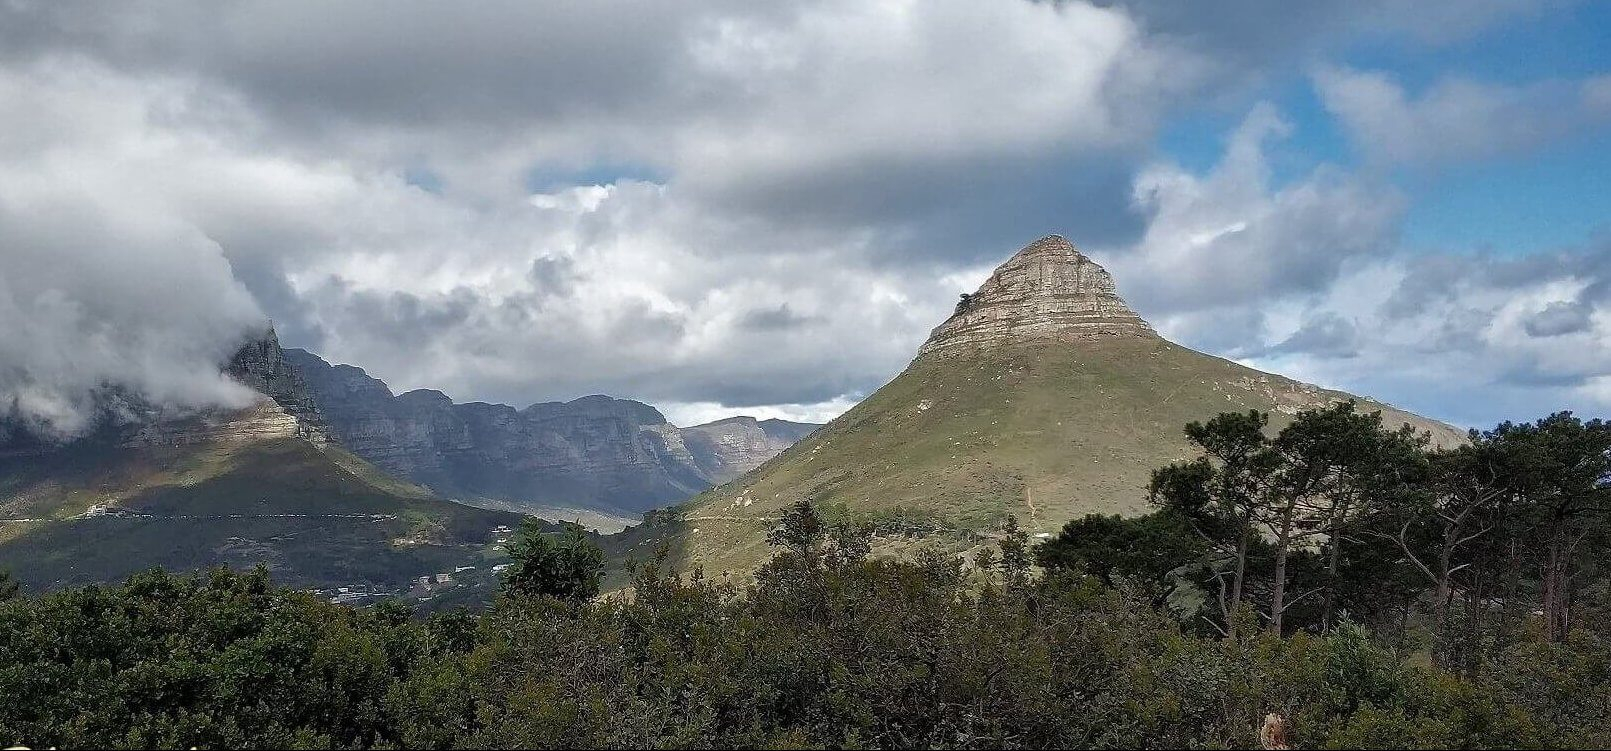 The Lion's Head and Twelve Apostles, Cape Town